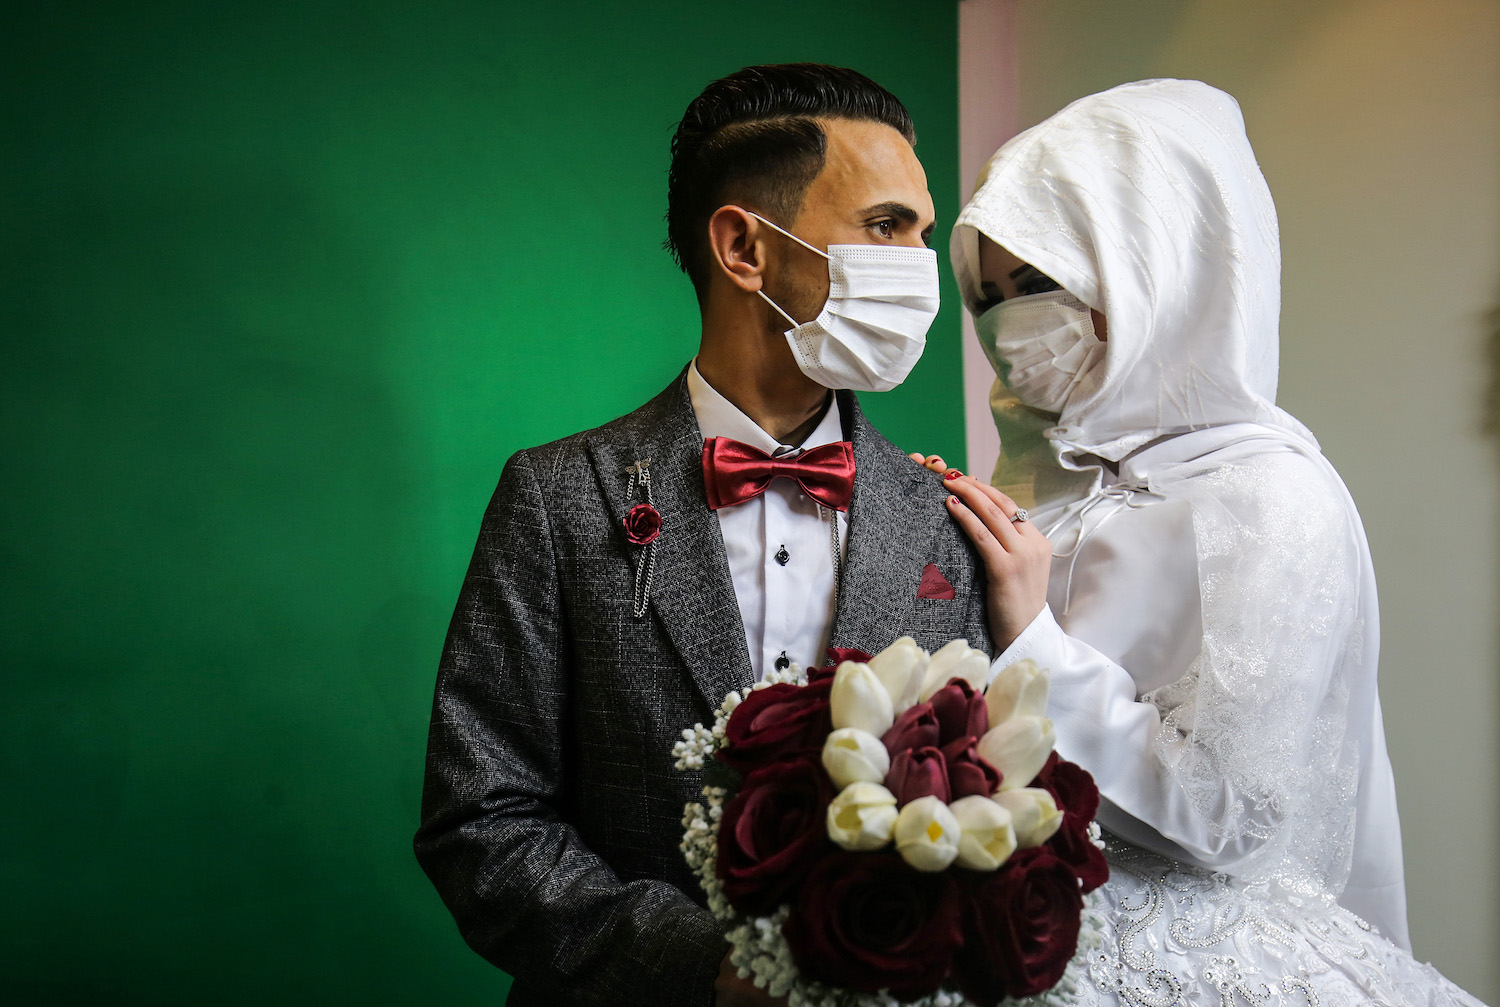 Mohamed Abu Daga and his bride Israa wear face masks during a photoshoot at a studio before their wedding ceremony in Khan Younis, Gaza Strip, on March 23, 2020. (Abed Rahim Khatib/Flash90)